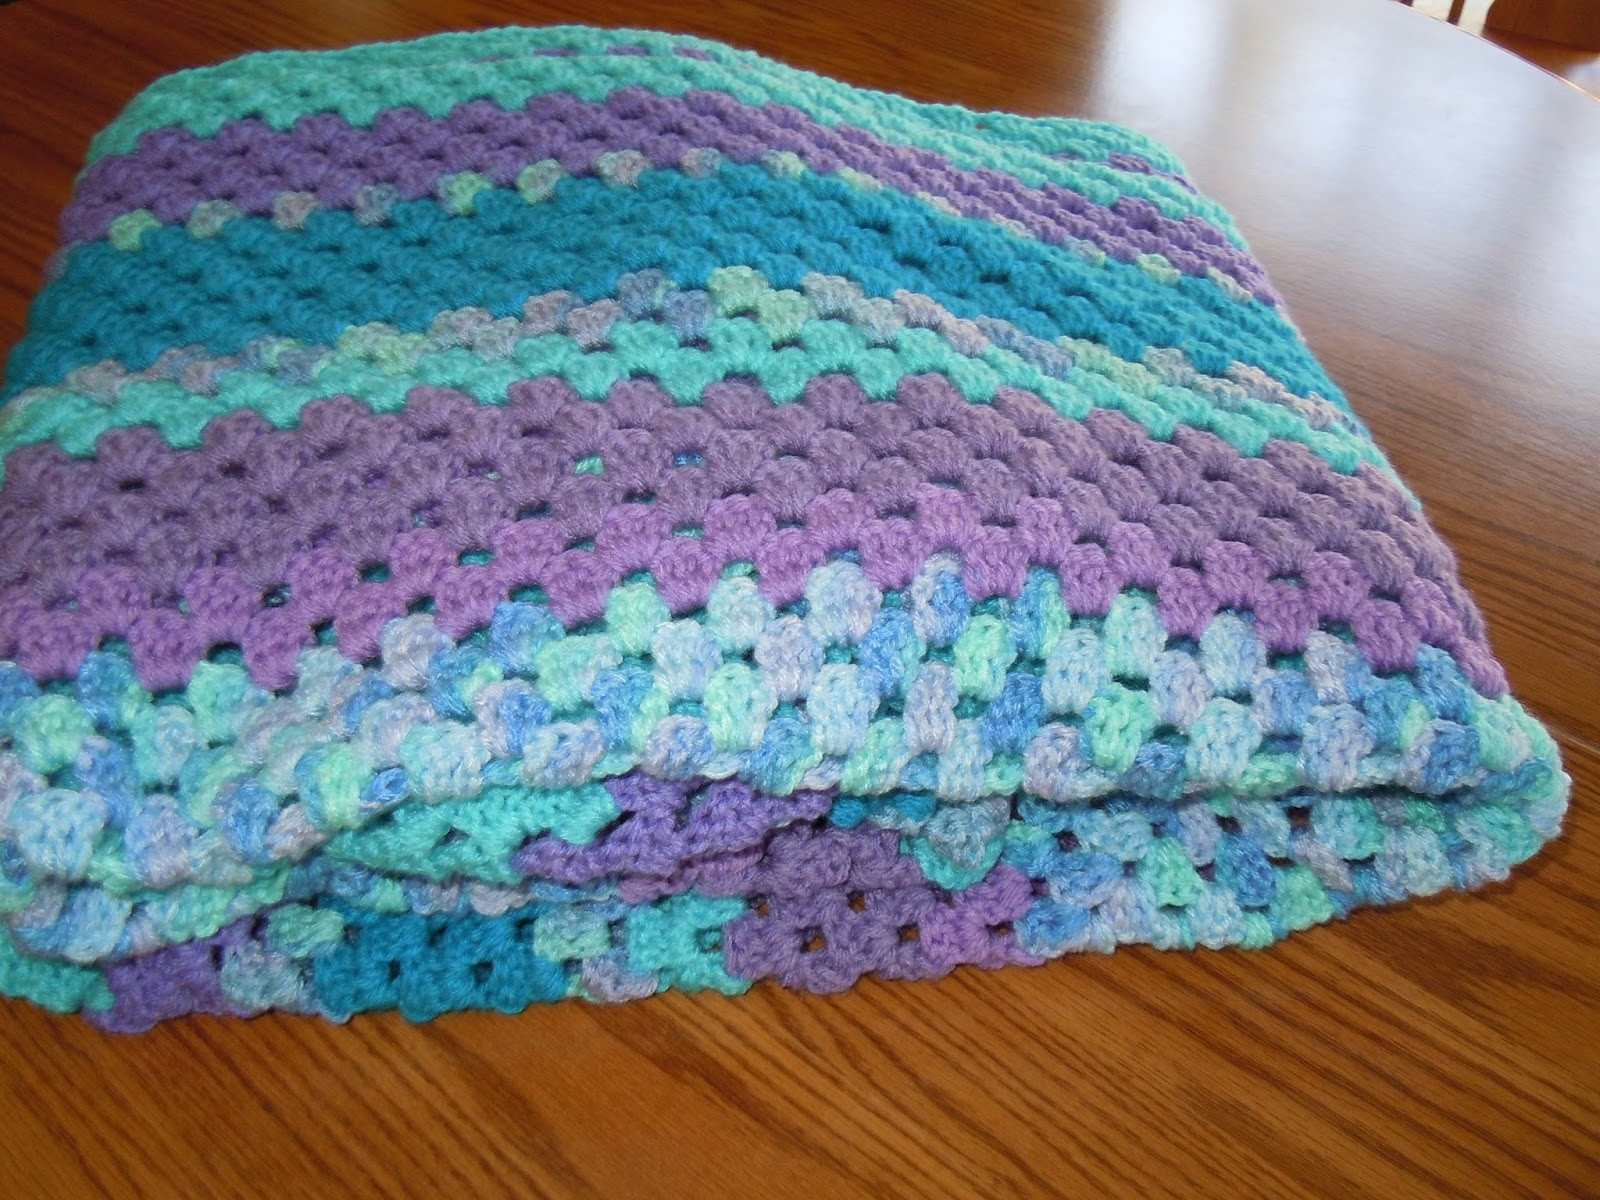 Afghan Square Crochet Patterns Elegant Craftdrawer Crafts How to Crochet A Granny Square Afghan Of Amazing 50 Pics Afghan Square Crochet Patterns